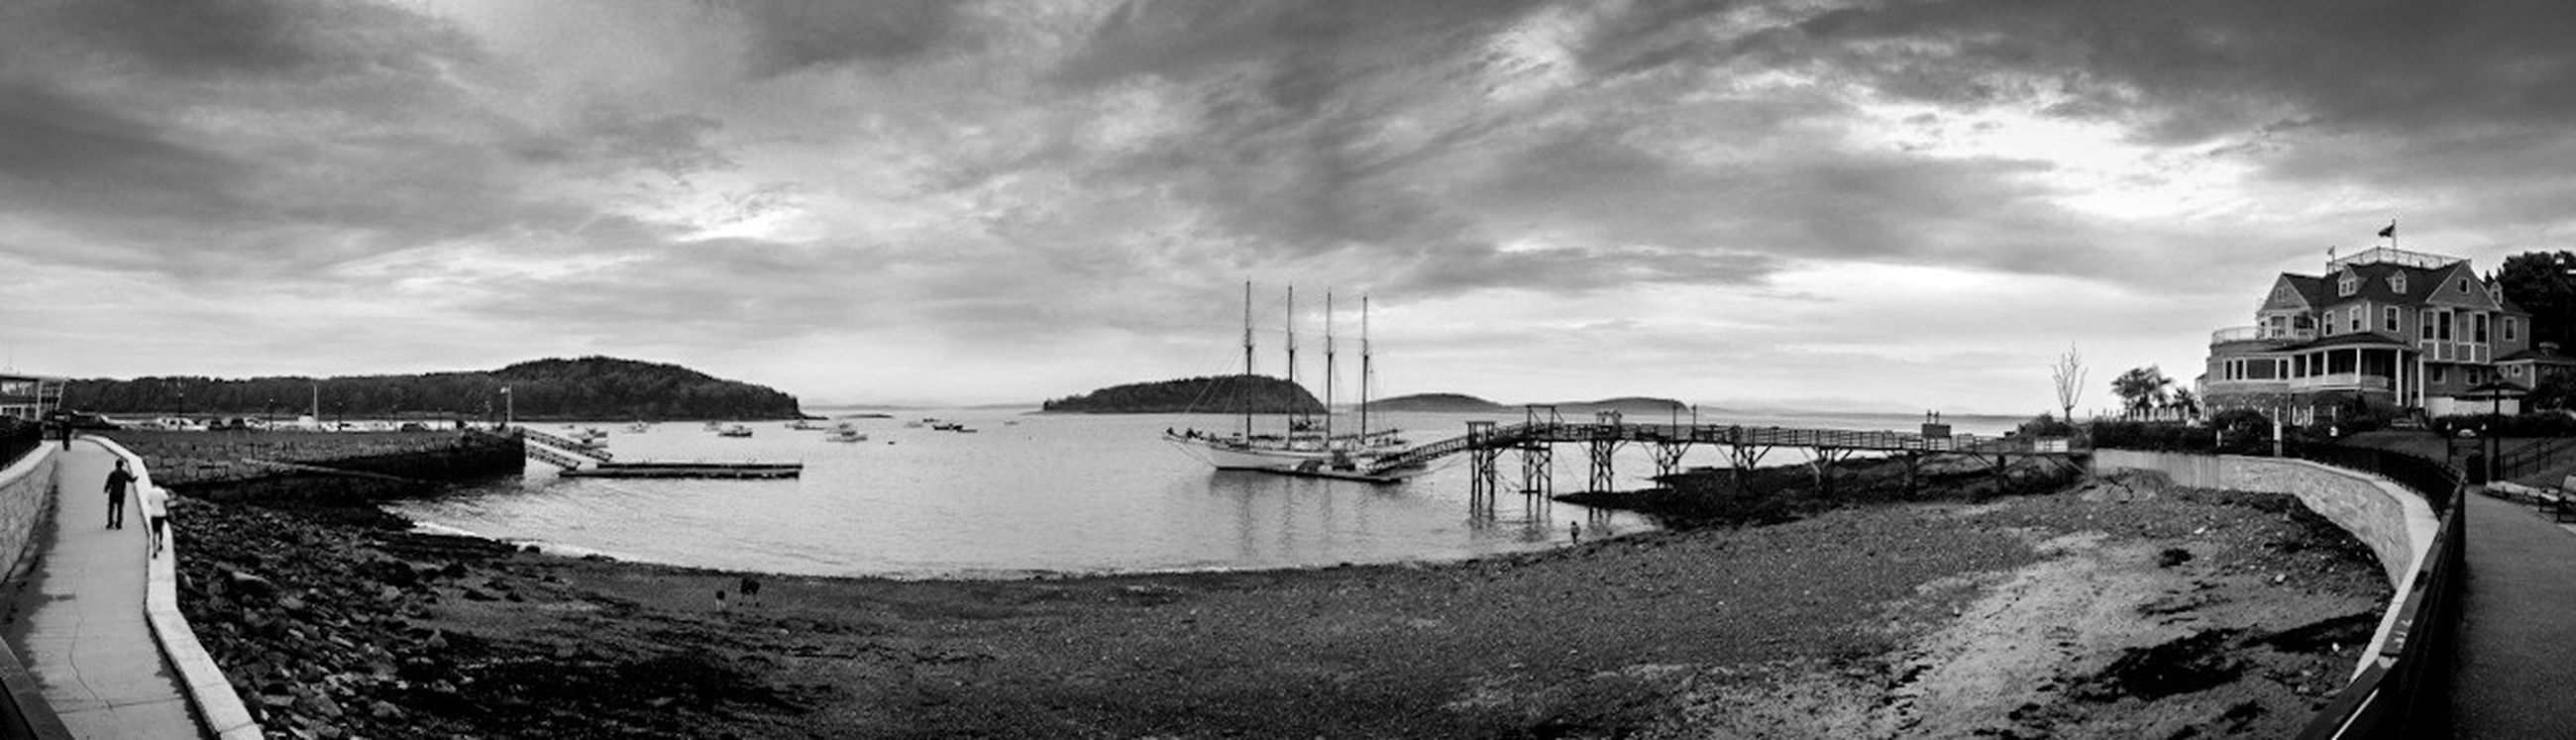 sky, water, architecture, built structure, sea, cloud - sky, nautical vessel, building exterior, cloudy, transportation, moored, beach, cloud, boat, mode of transport, shore, panoramic, harbor, day, nature